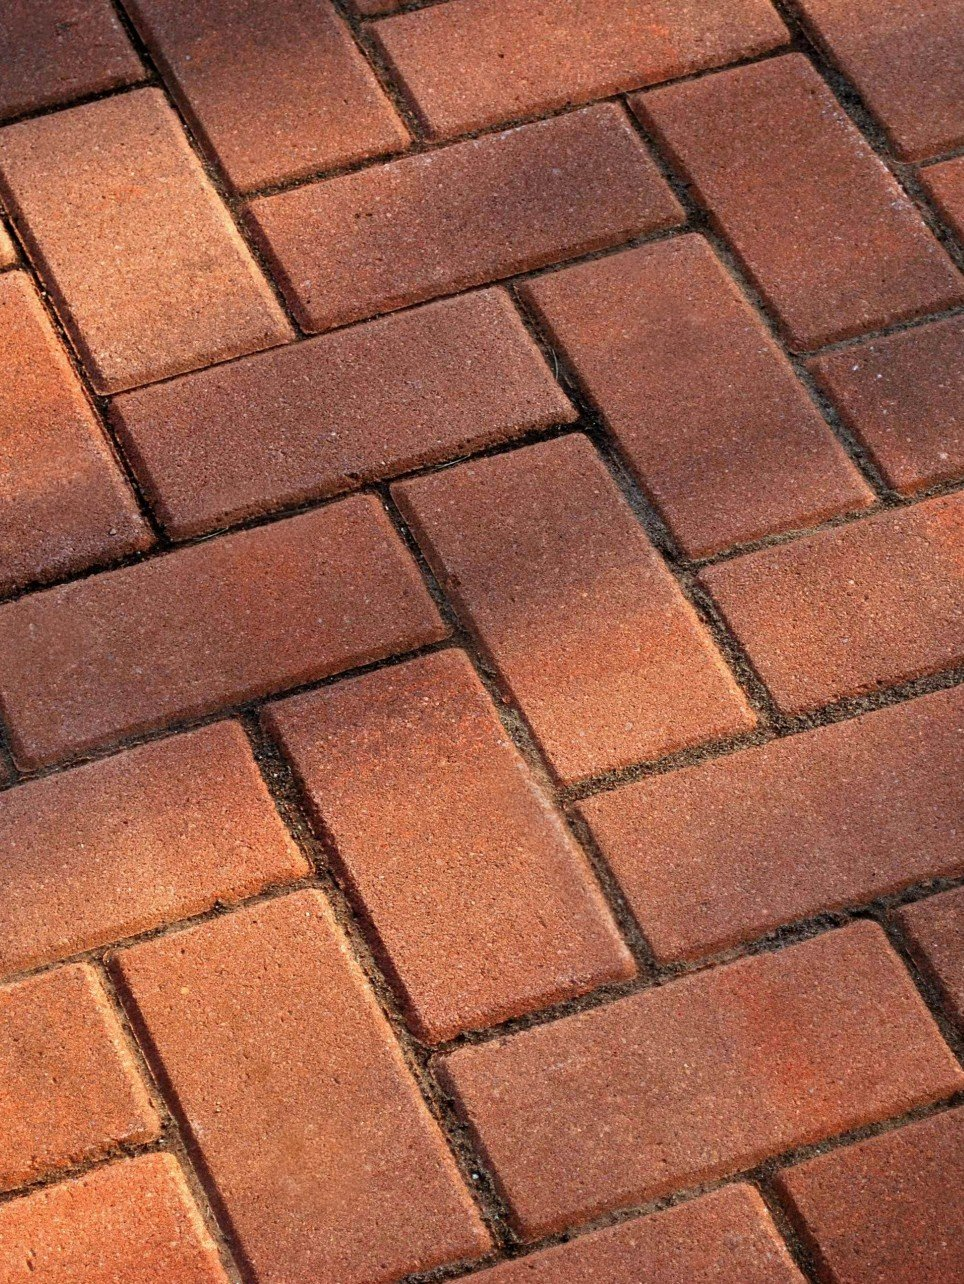 Block Paving Companies Selly Park